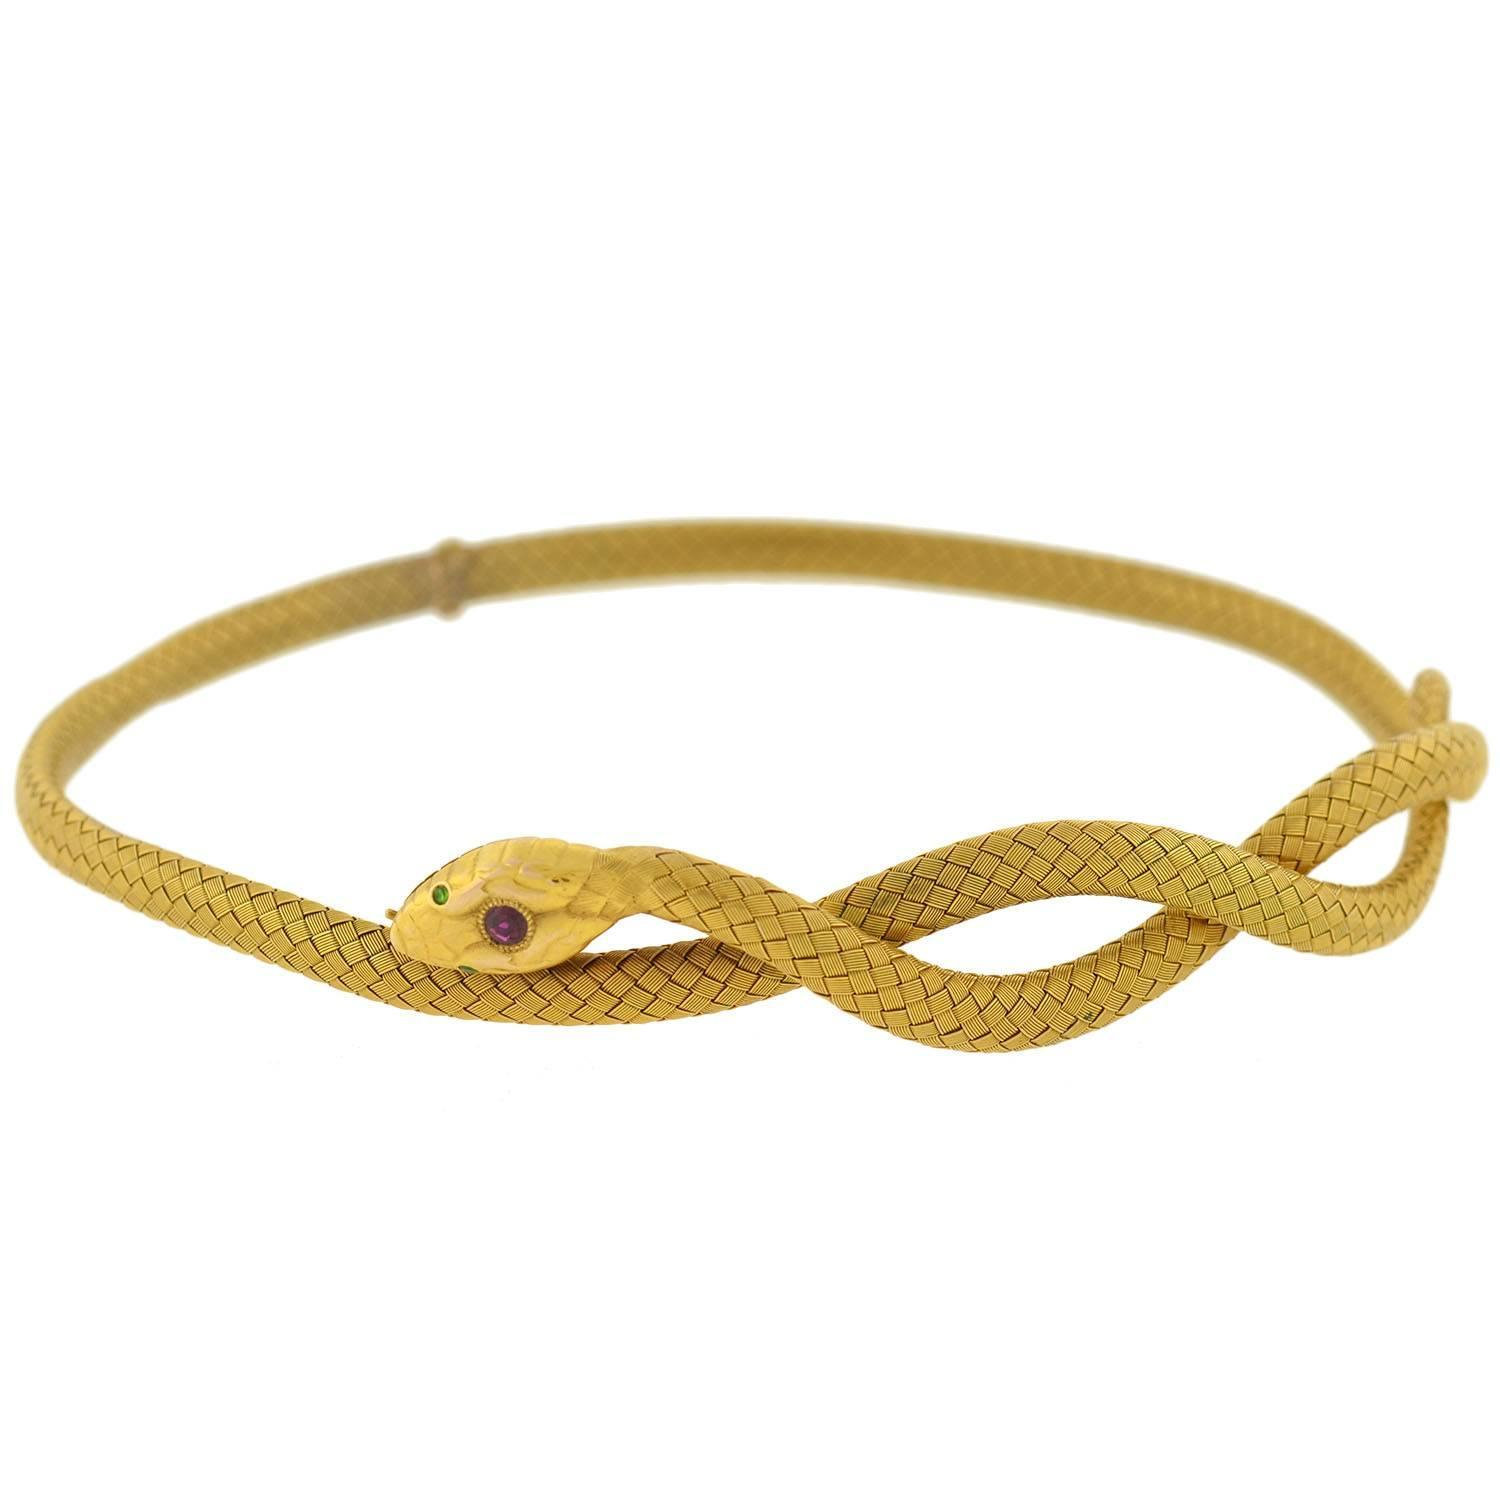 gemstone woven gold snake choker necklace at 1stdibs